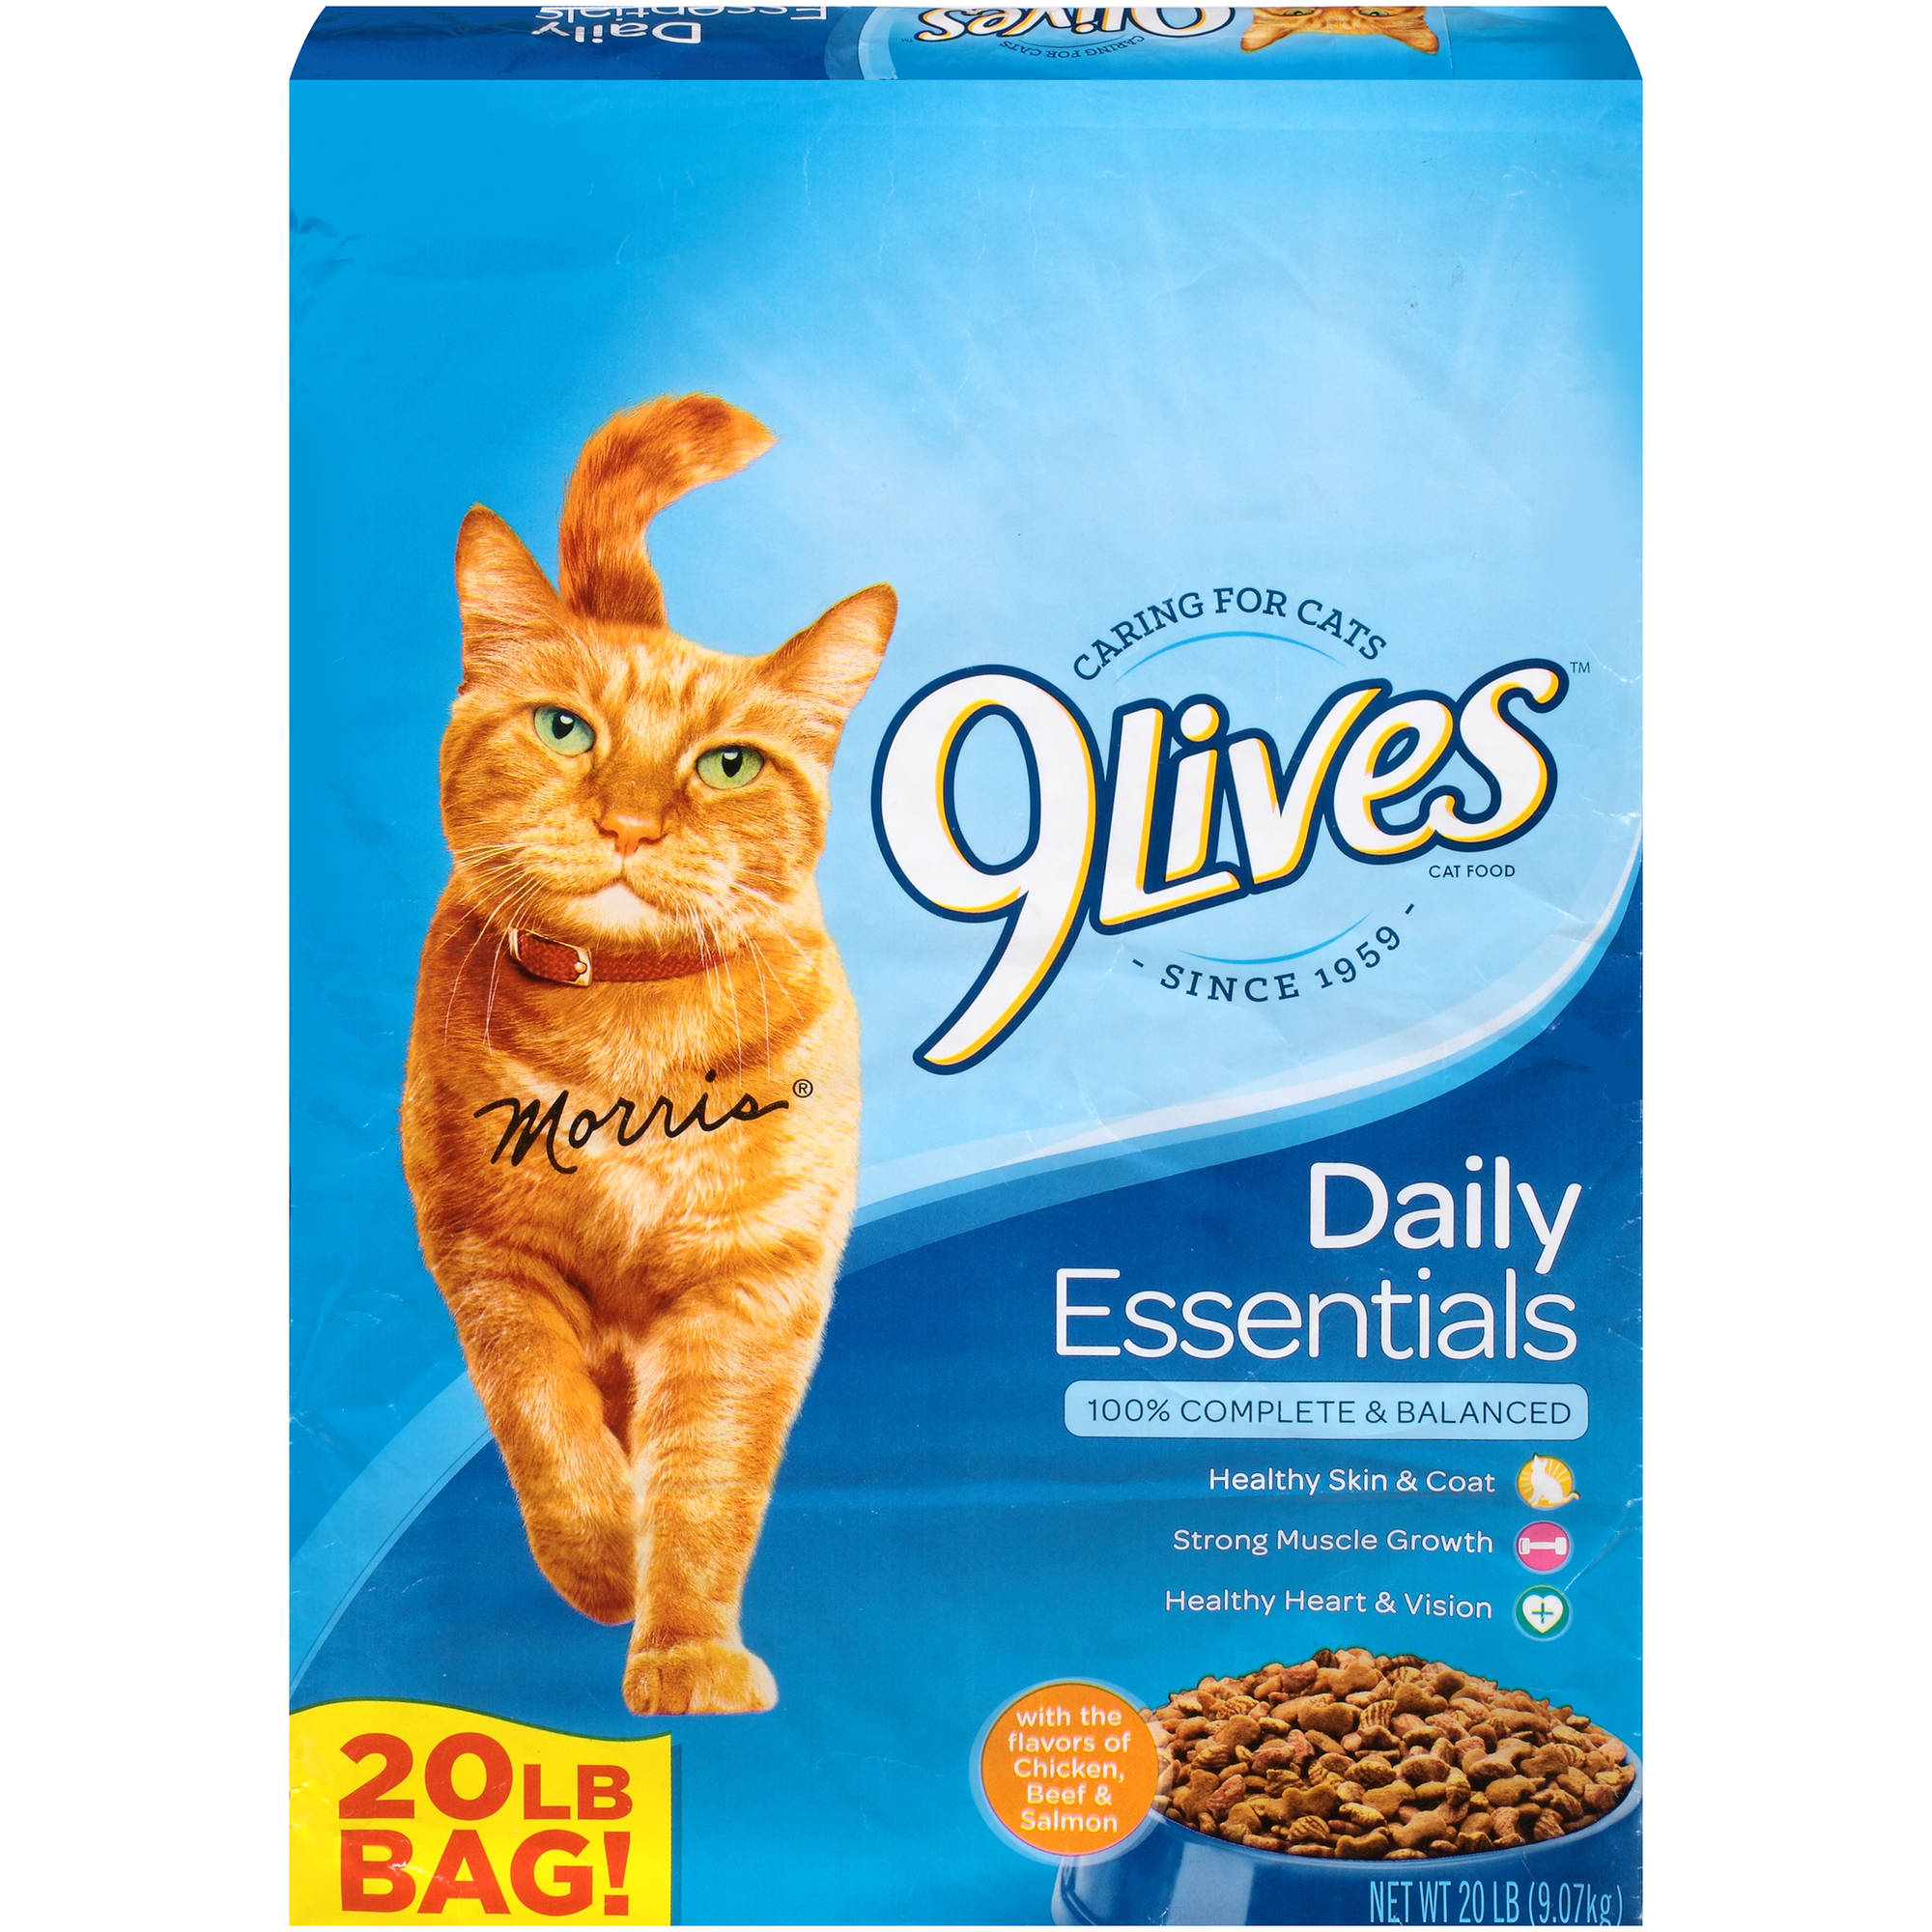 Click here to buy 9 Lives Daily Essentials Dry Cat Food, 20 lb by JM SMUCKER RETAIL SALES.